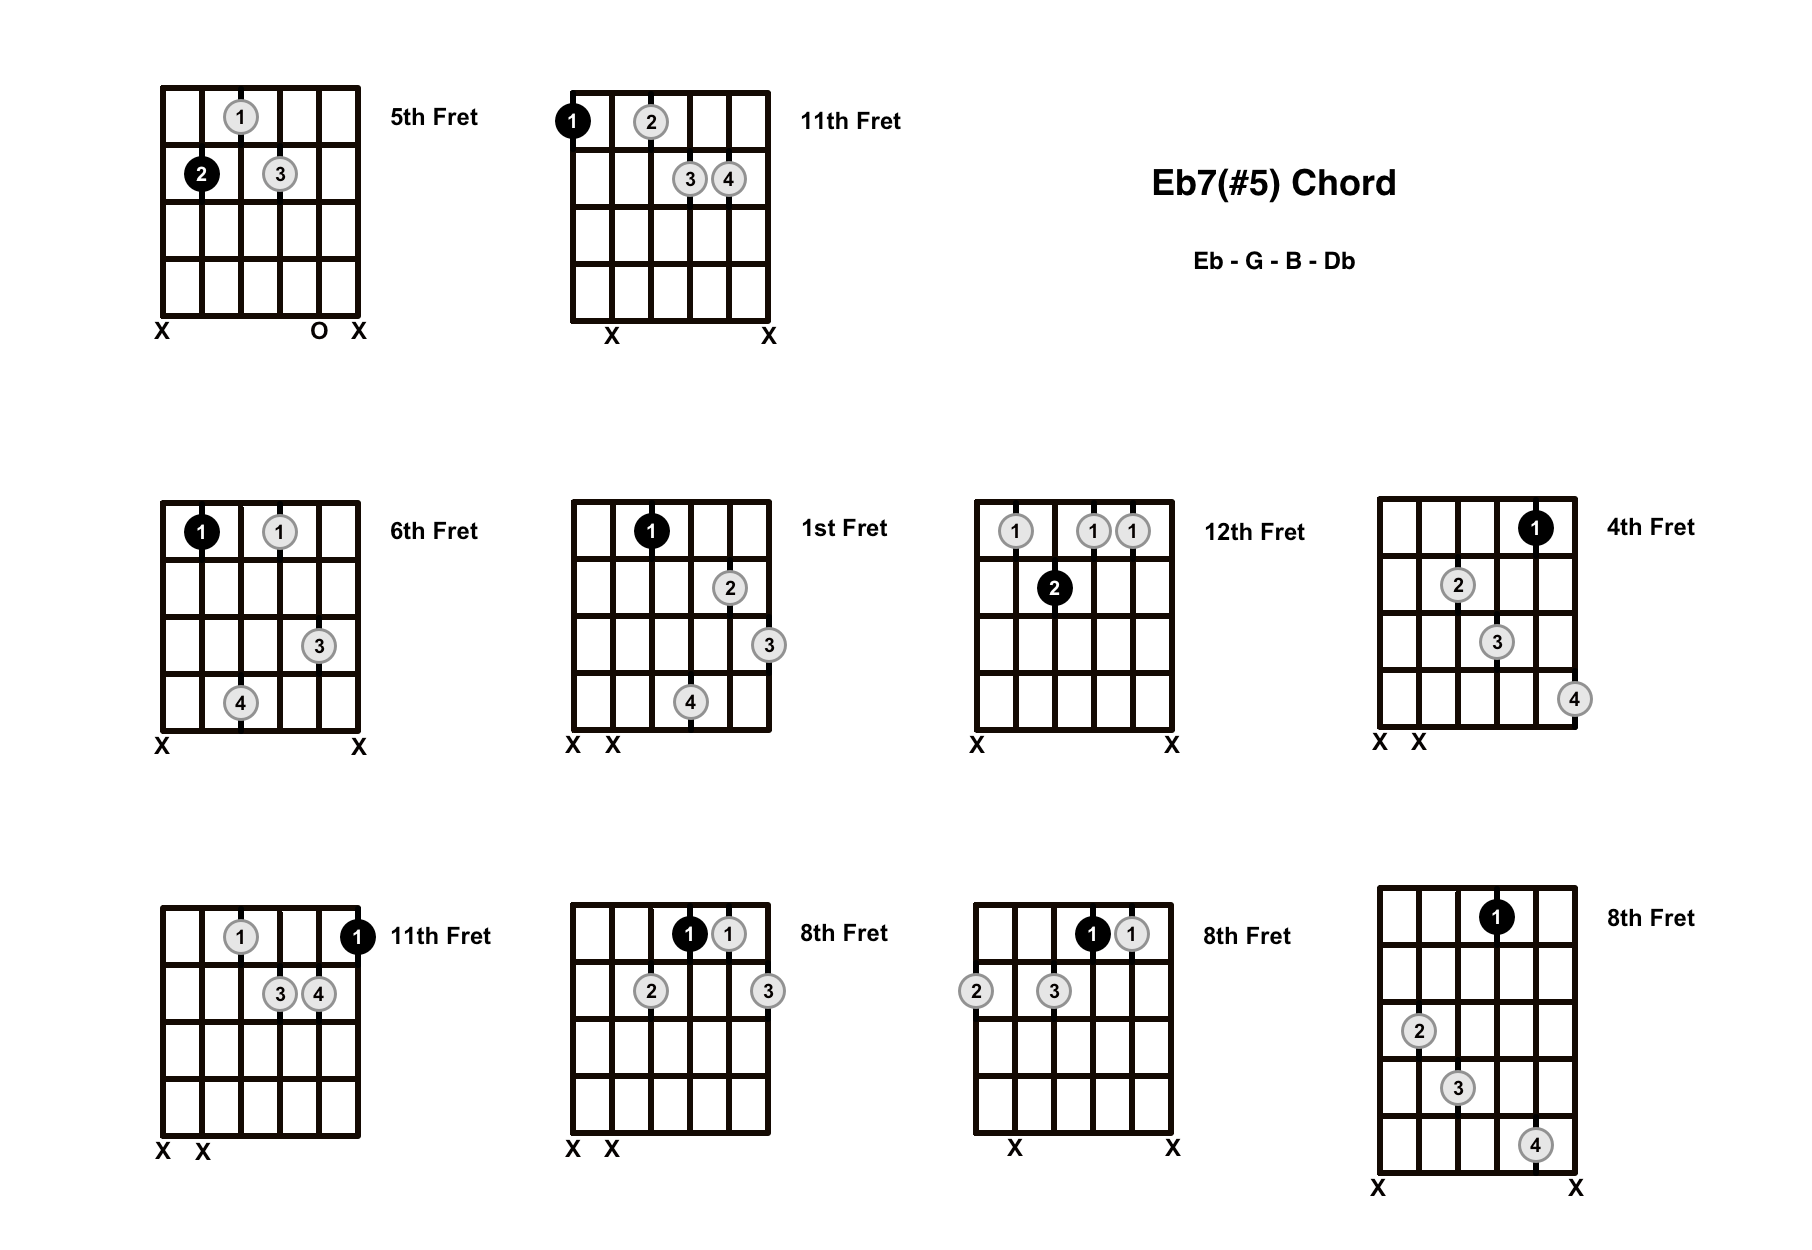 E Flat Augmented 7 Chord On The Guitar (Eb7#5, Eb+7) – Diagrams, Finger Positions and Theory